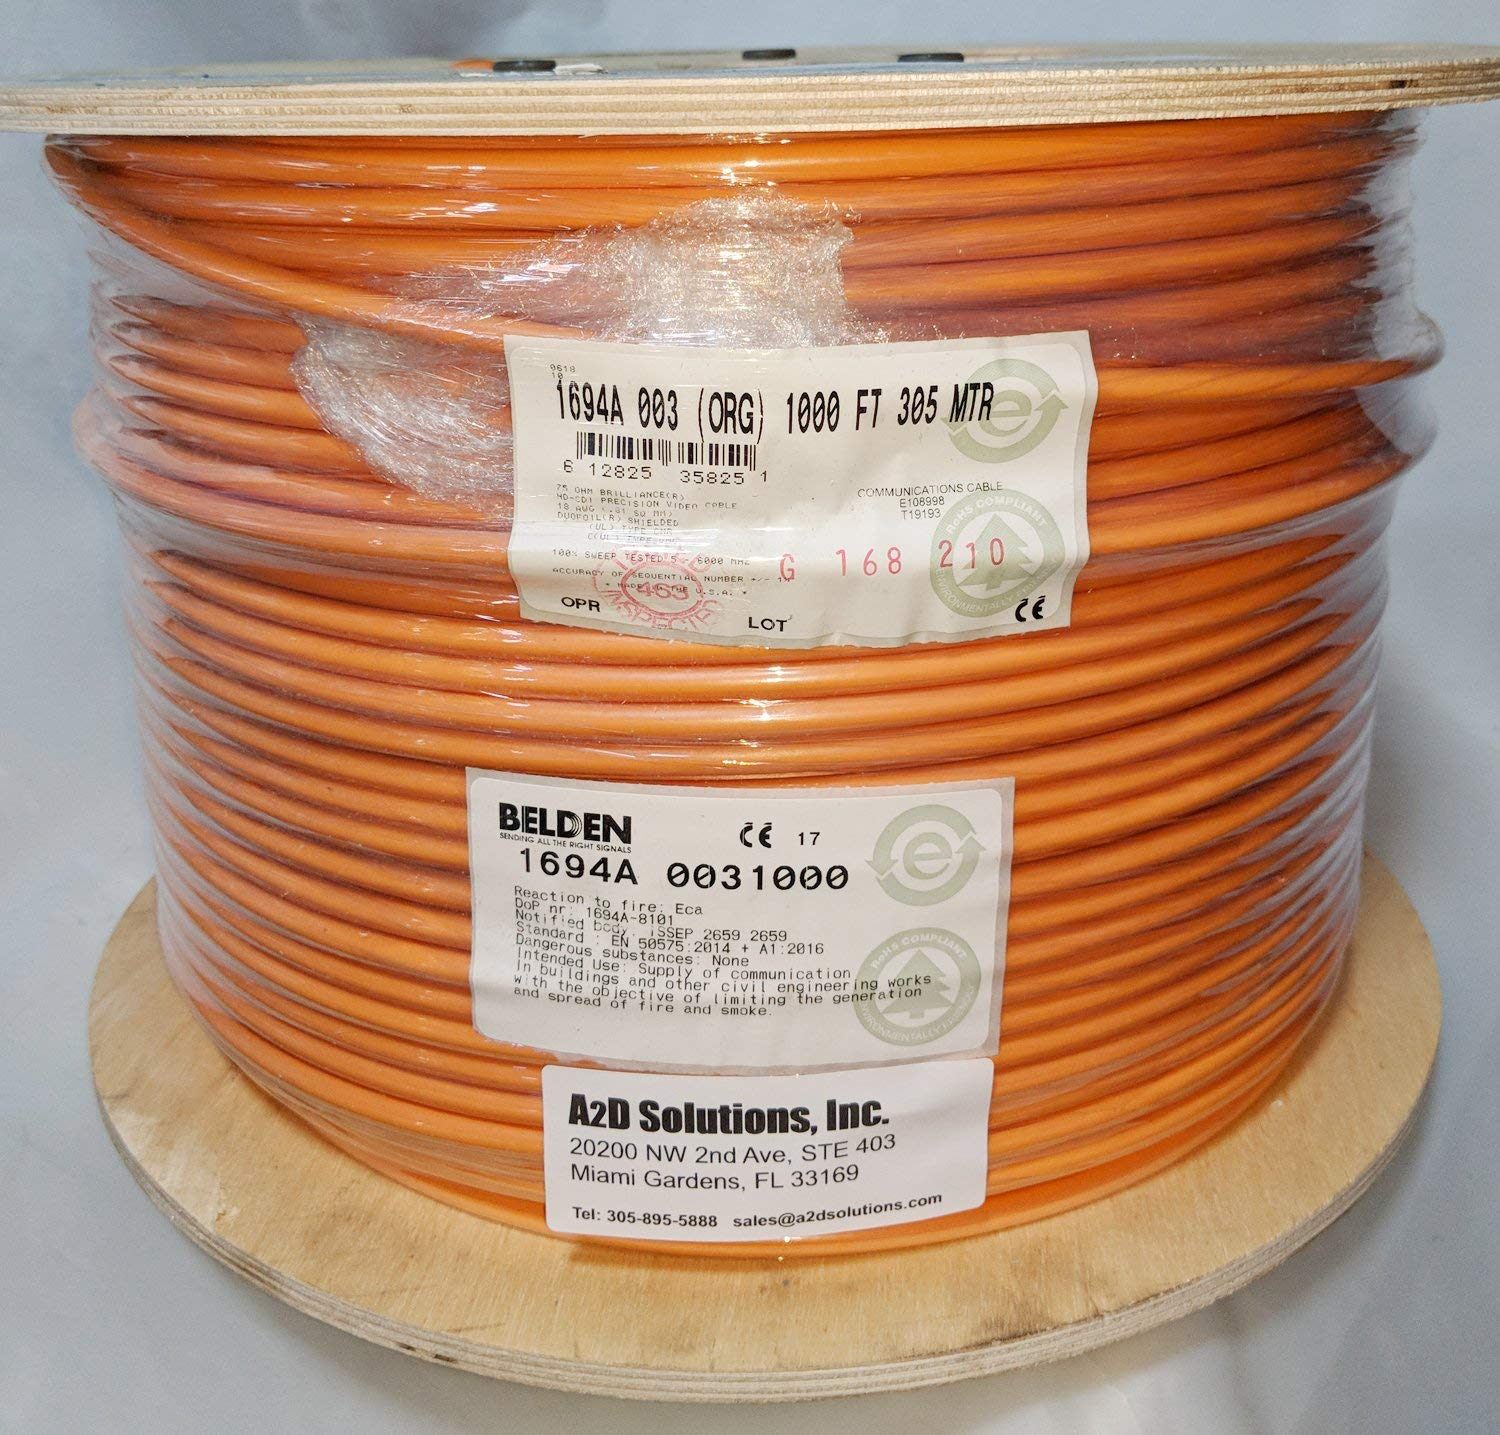 Cheap Belden Coaxial Cable Rg6 Find Deals Network Digital Satellite Tv With A Standard Get Quotations 1694a 0031000 Hd Sdi 18awg Serial Orange